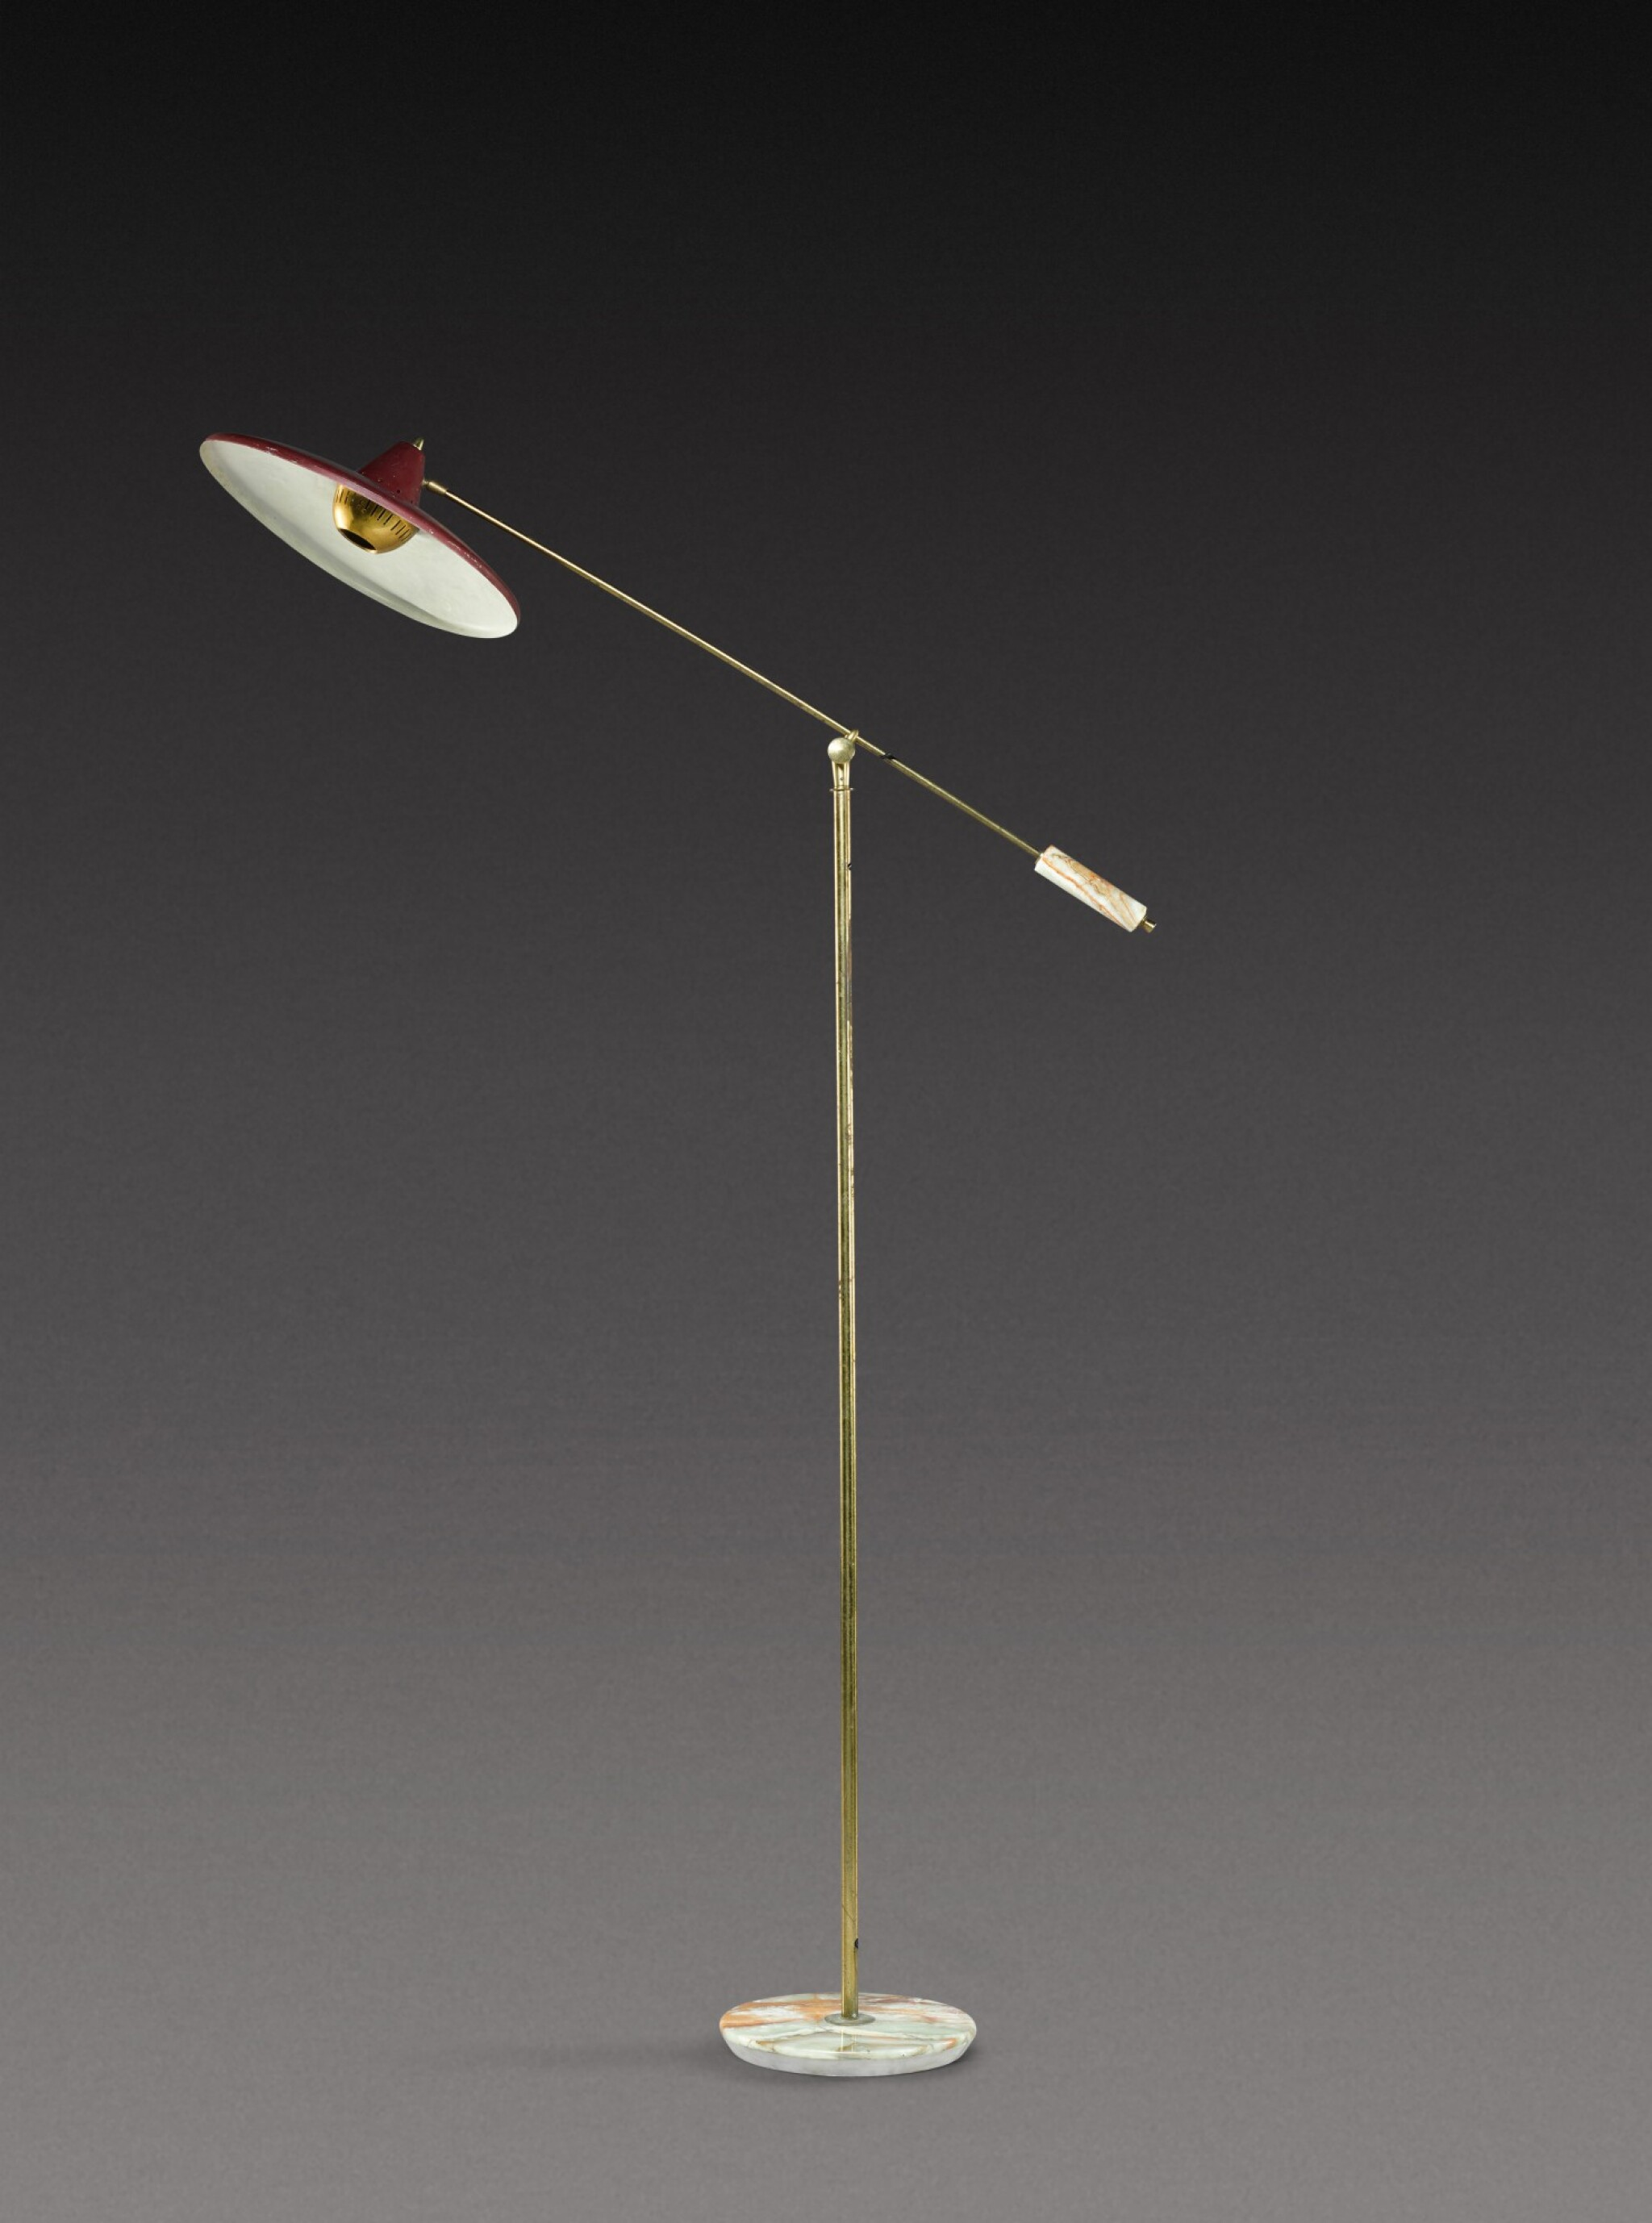 View 1 of Lot 184. Floor lamp.